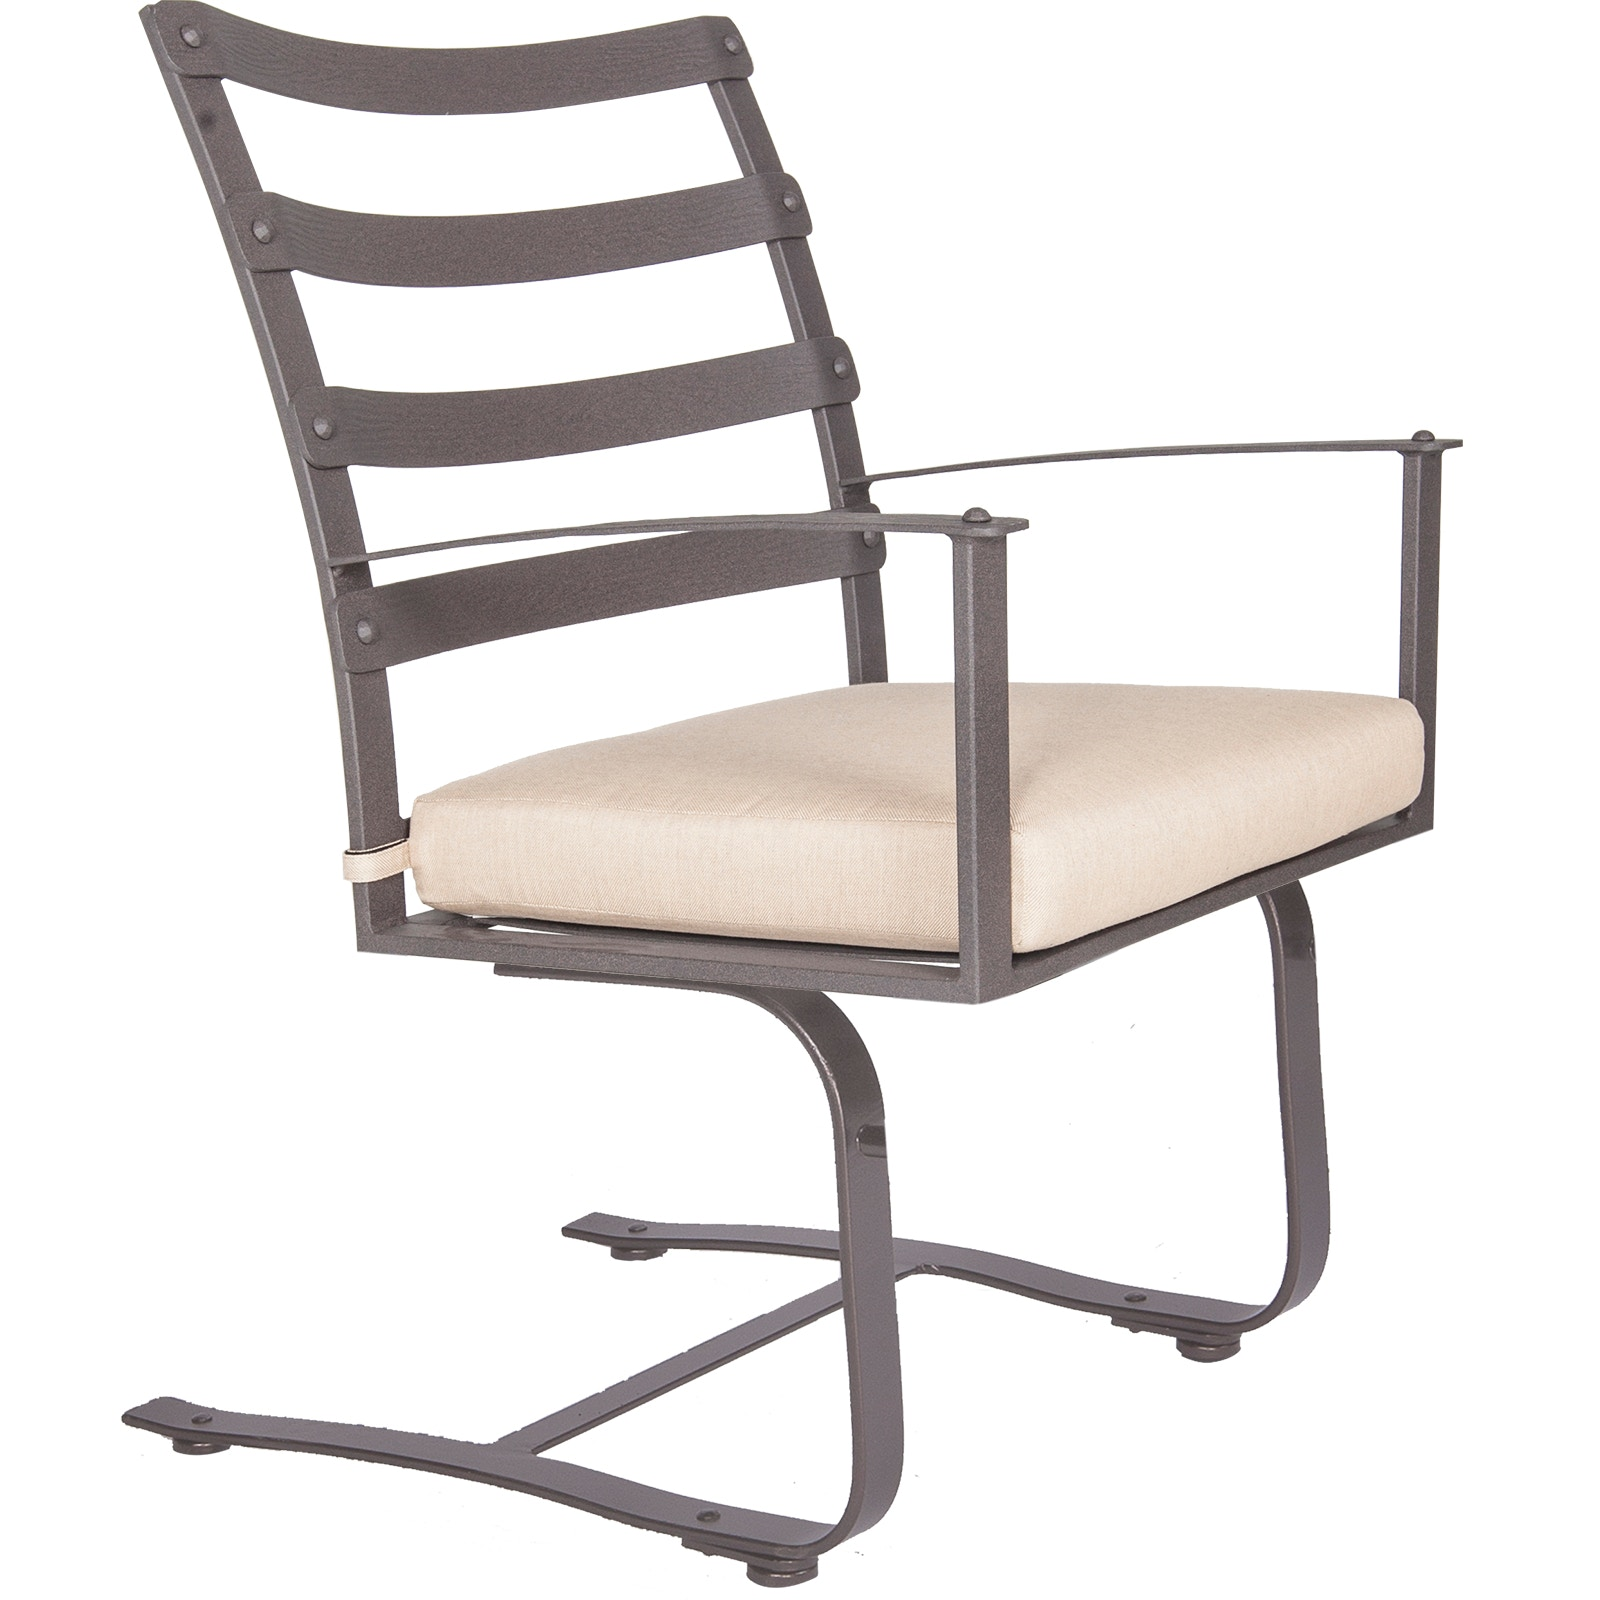 Charmant OW Lee Furniture Ridgewood Spring Base Dining Arm Chair 7353 SB